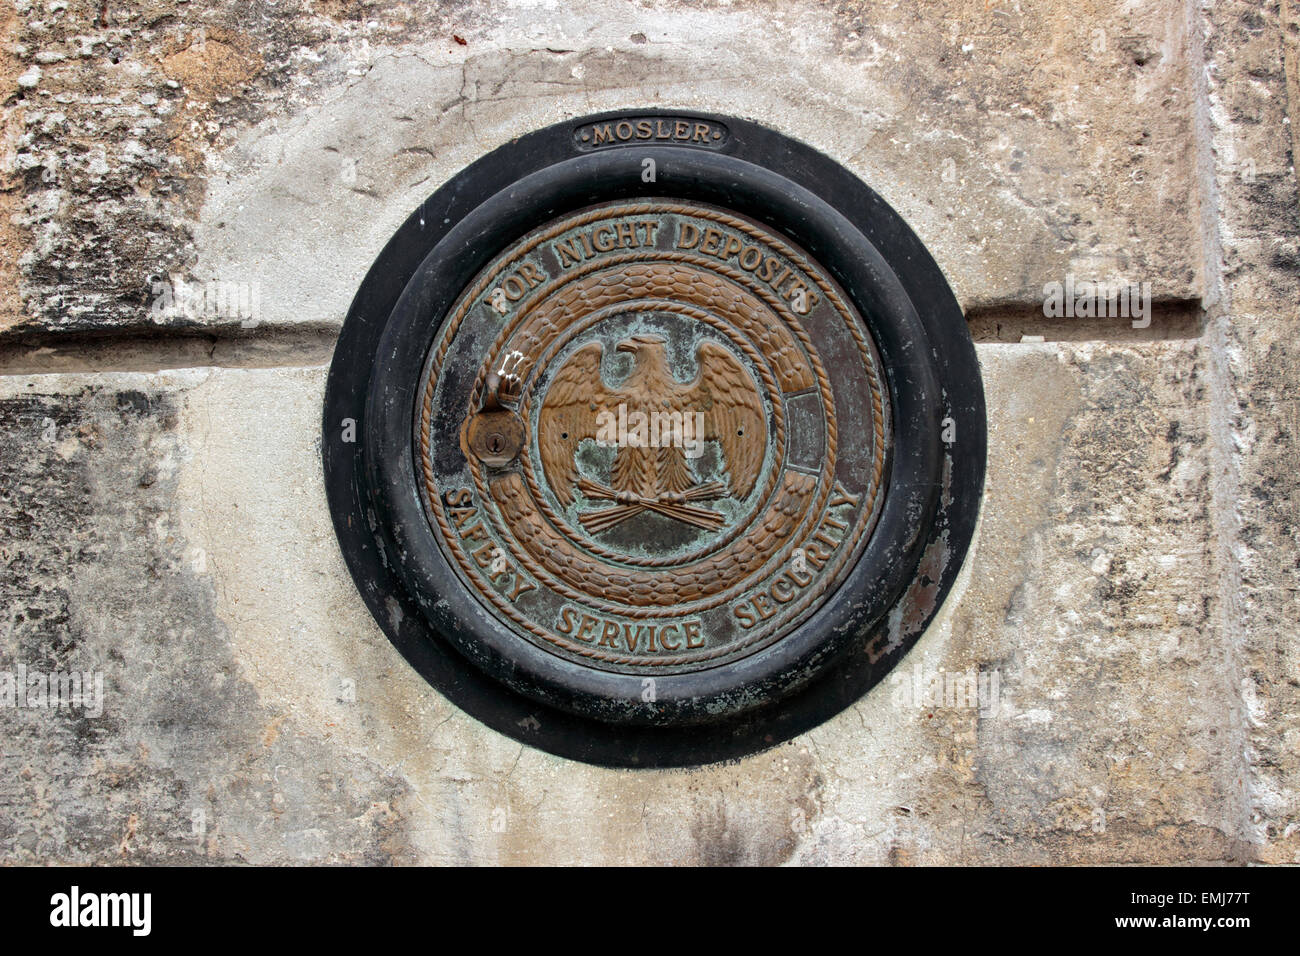 Old American night deposit vault bank in decaying building Old Town Habana Vieja Havana Cuba - Stock Image